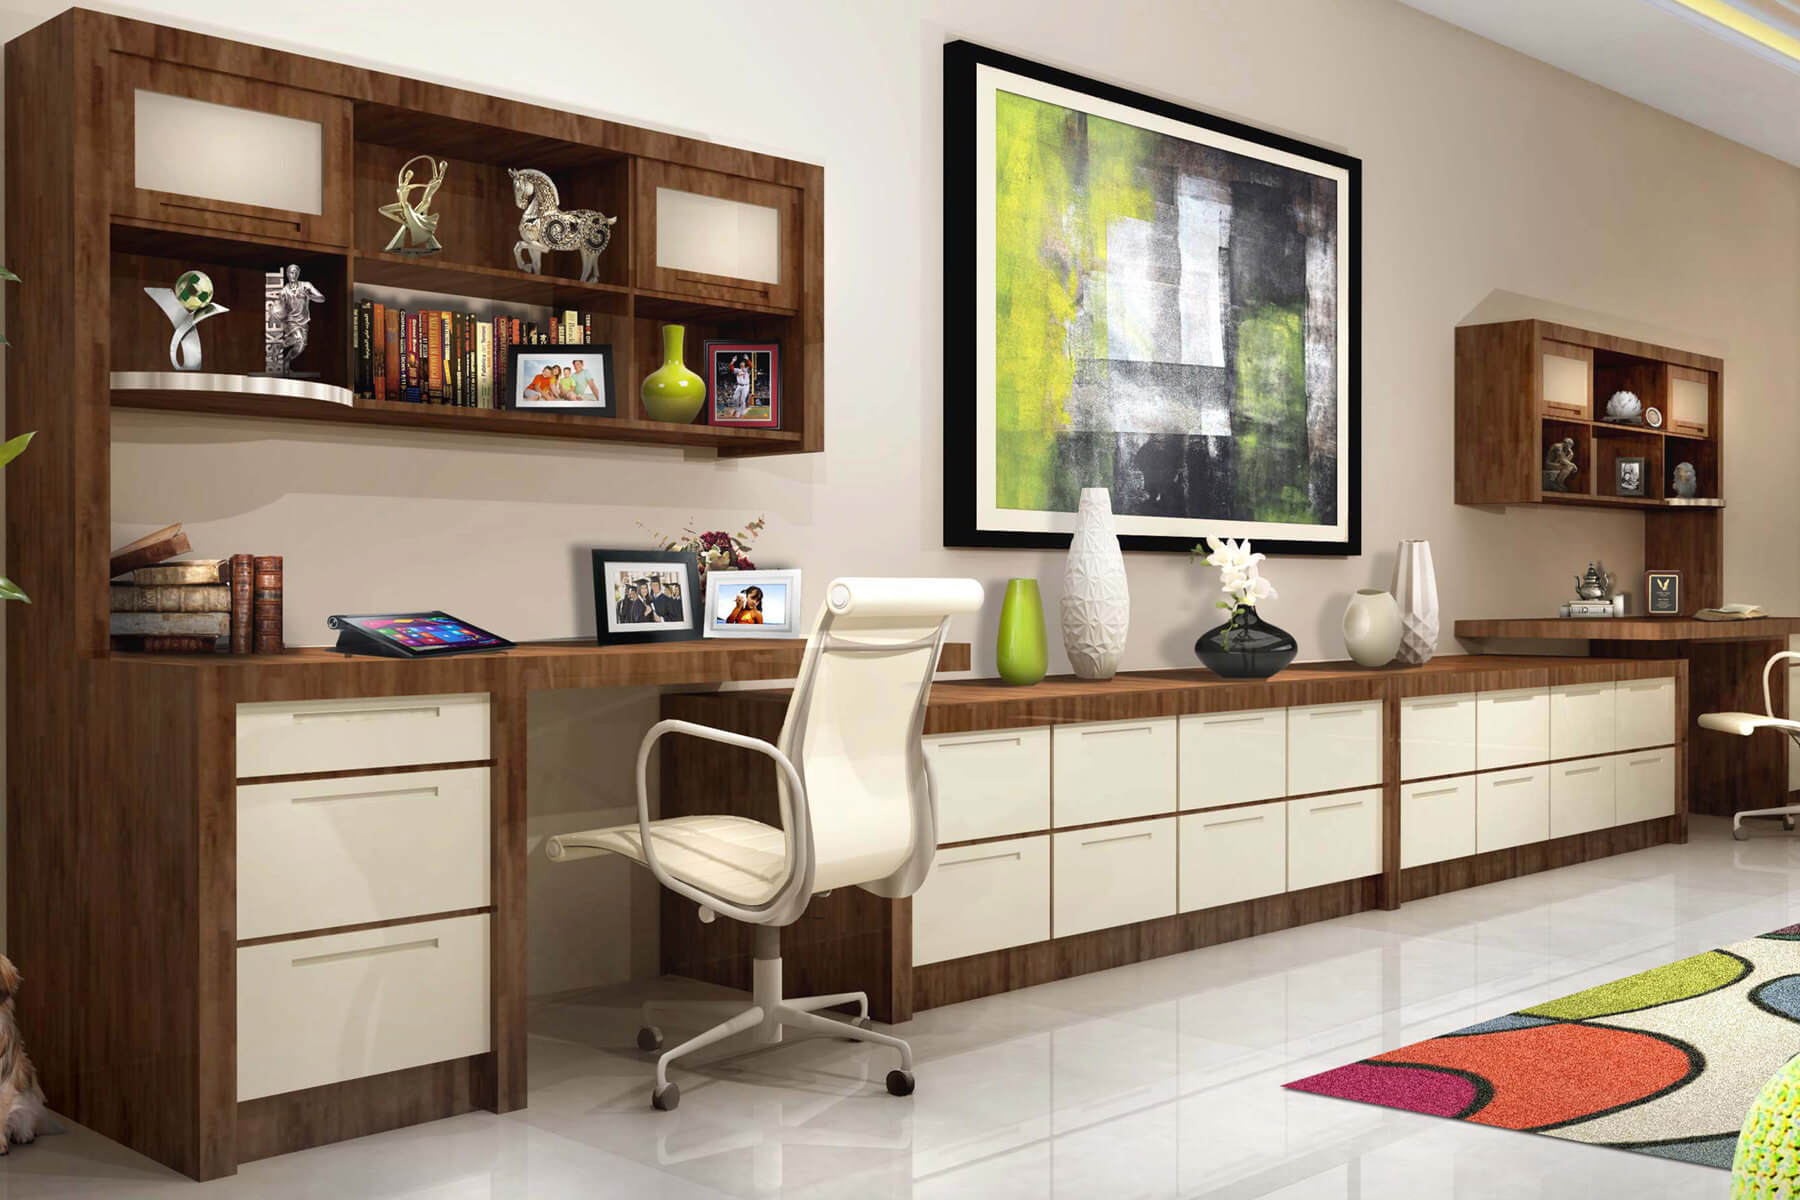 26 home office designs desks shelving by closet factory for Office design tool